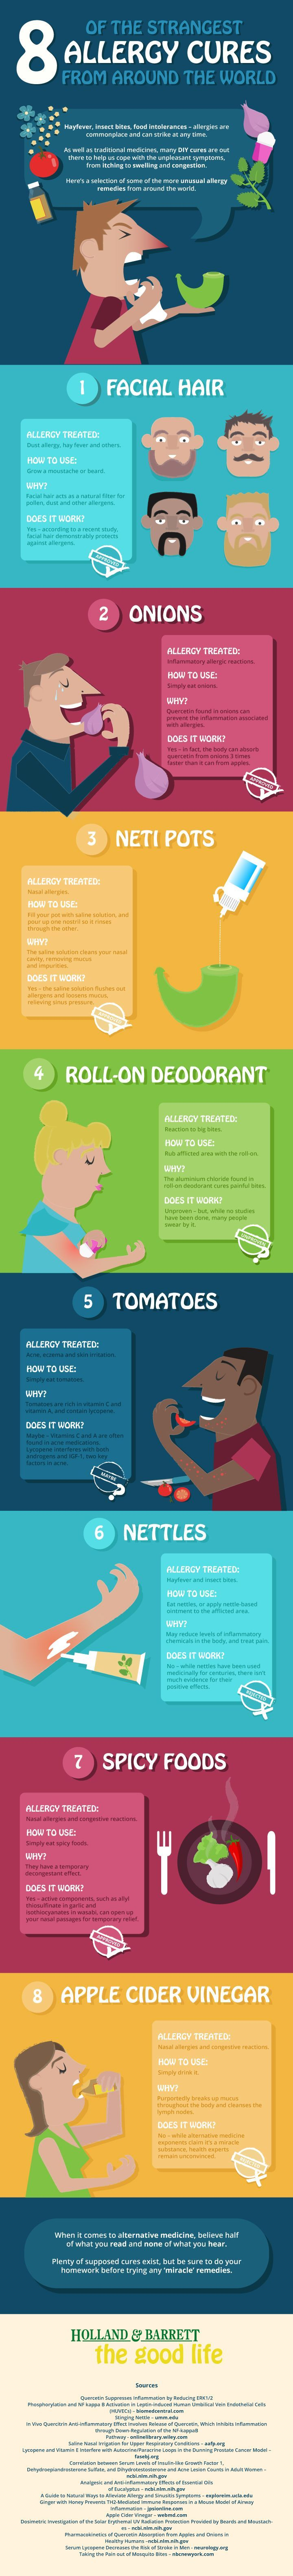 8 of the Strangest Allergy Cures from Around the World. #health